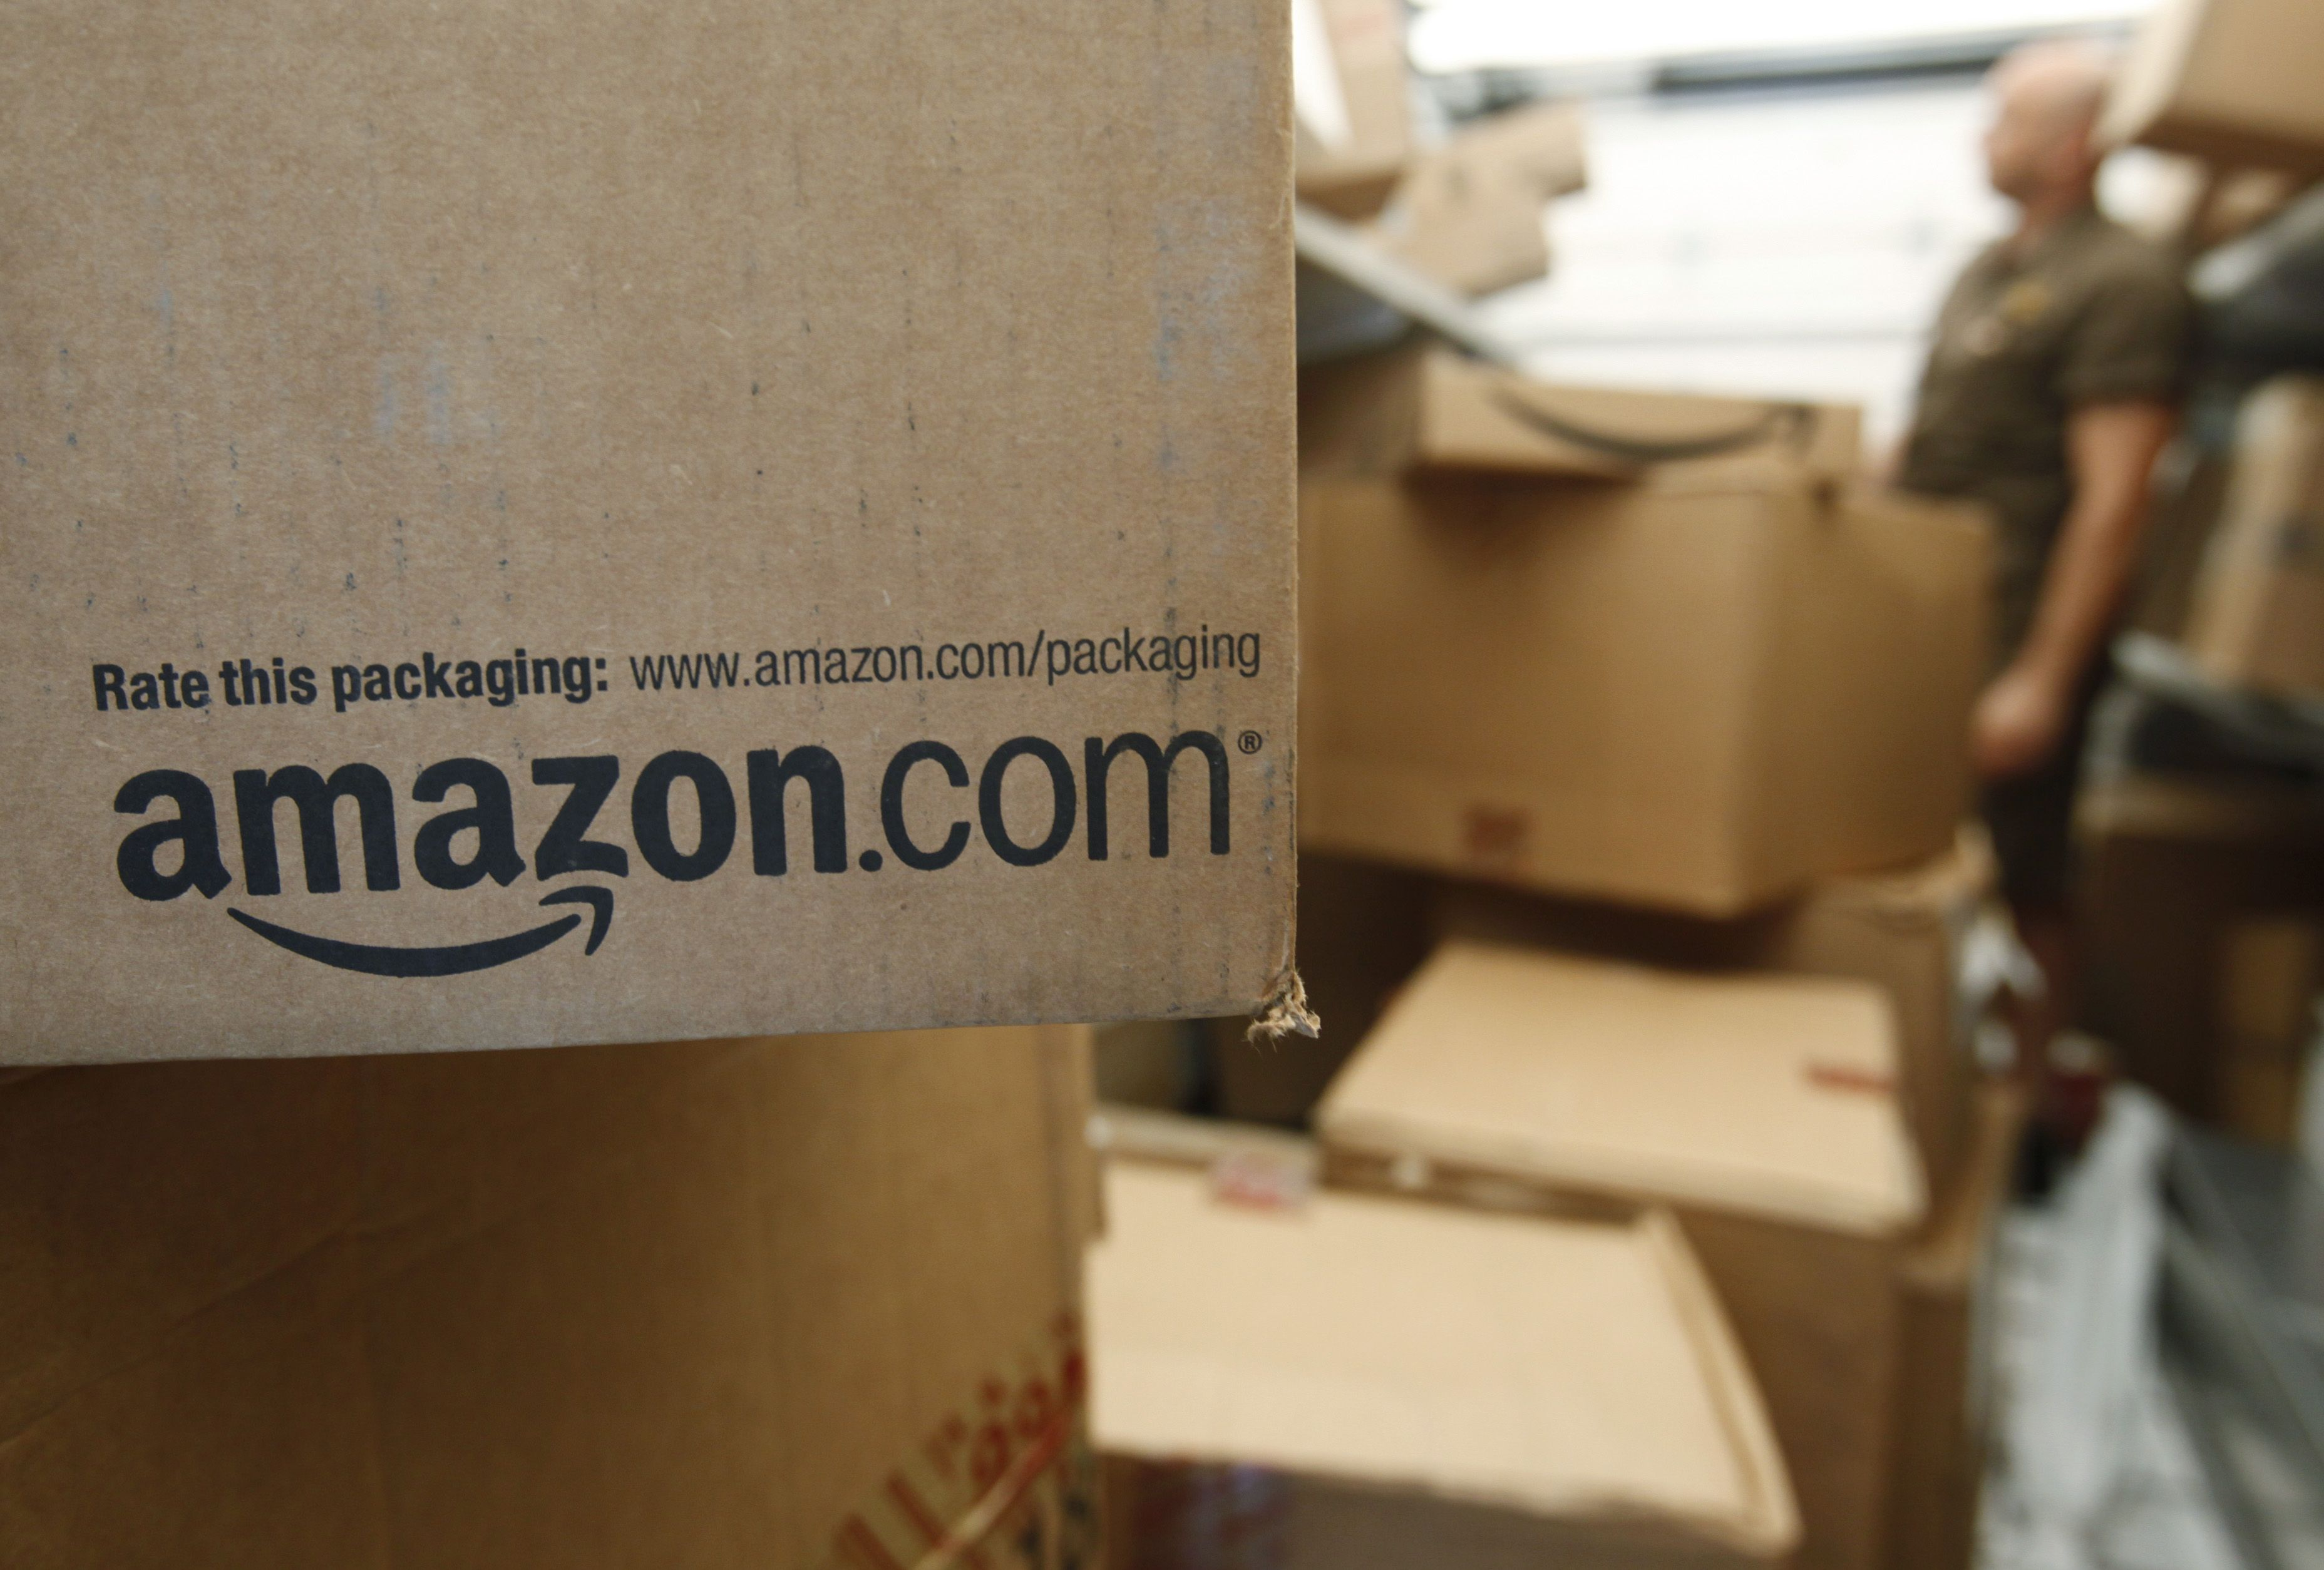 Amazon.com An Amazon.com package sits in a UPS truck in Palo Alto, Calif. As of 2014, the company is the biggest online retailer in the U.S., commanding about 20 percent of all e-commerceSmart Spending Avoiding Amazon, Palo Alto, USA